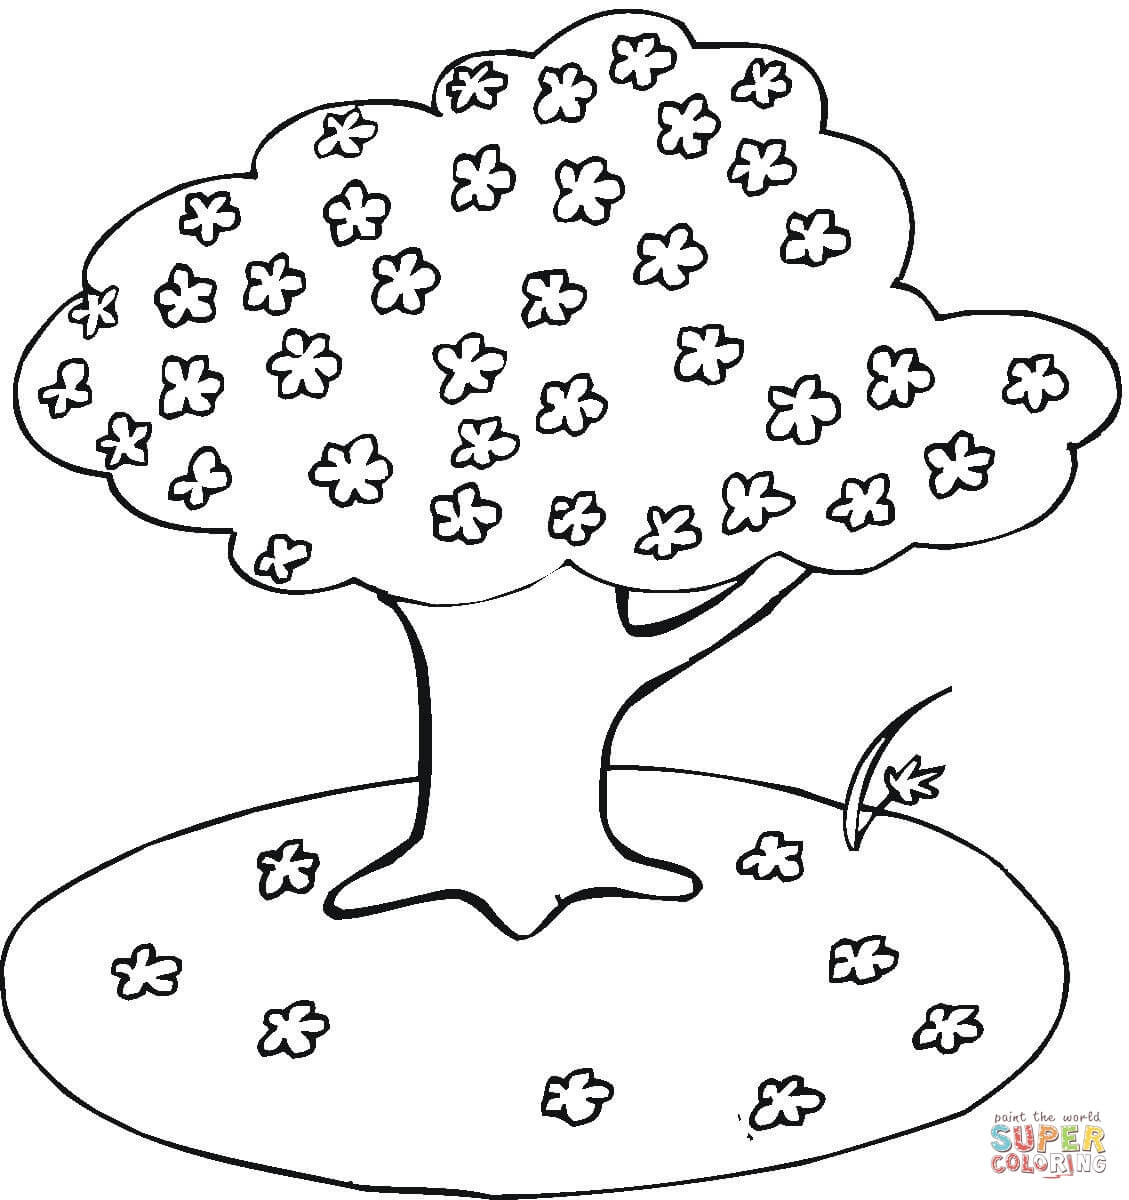 Free Cherry Blossom Coloring Pages, Download Free Clip Art, Free ... | 1200x1129